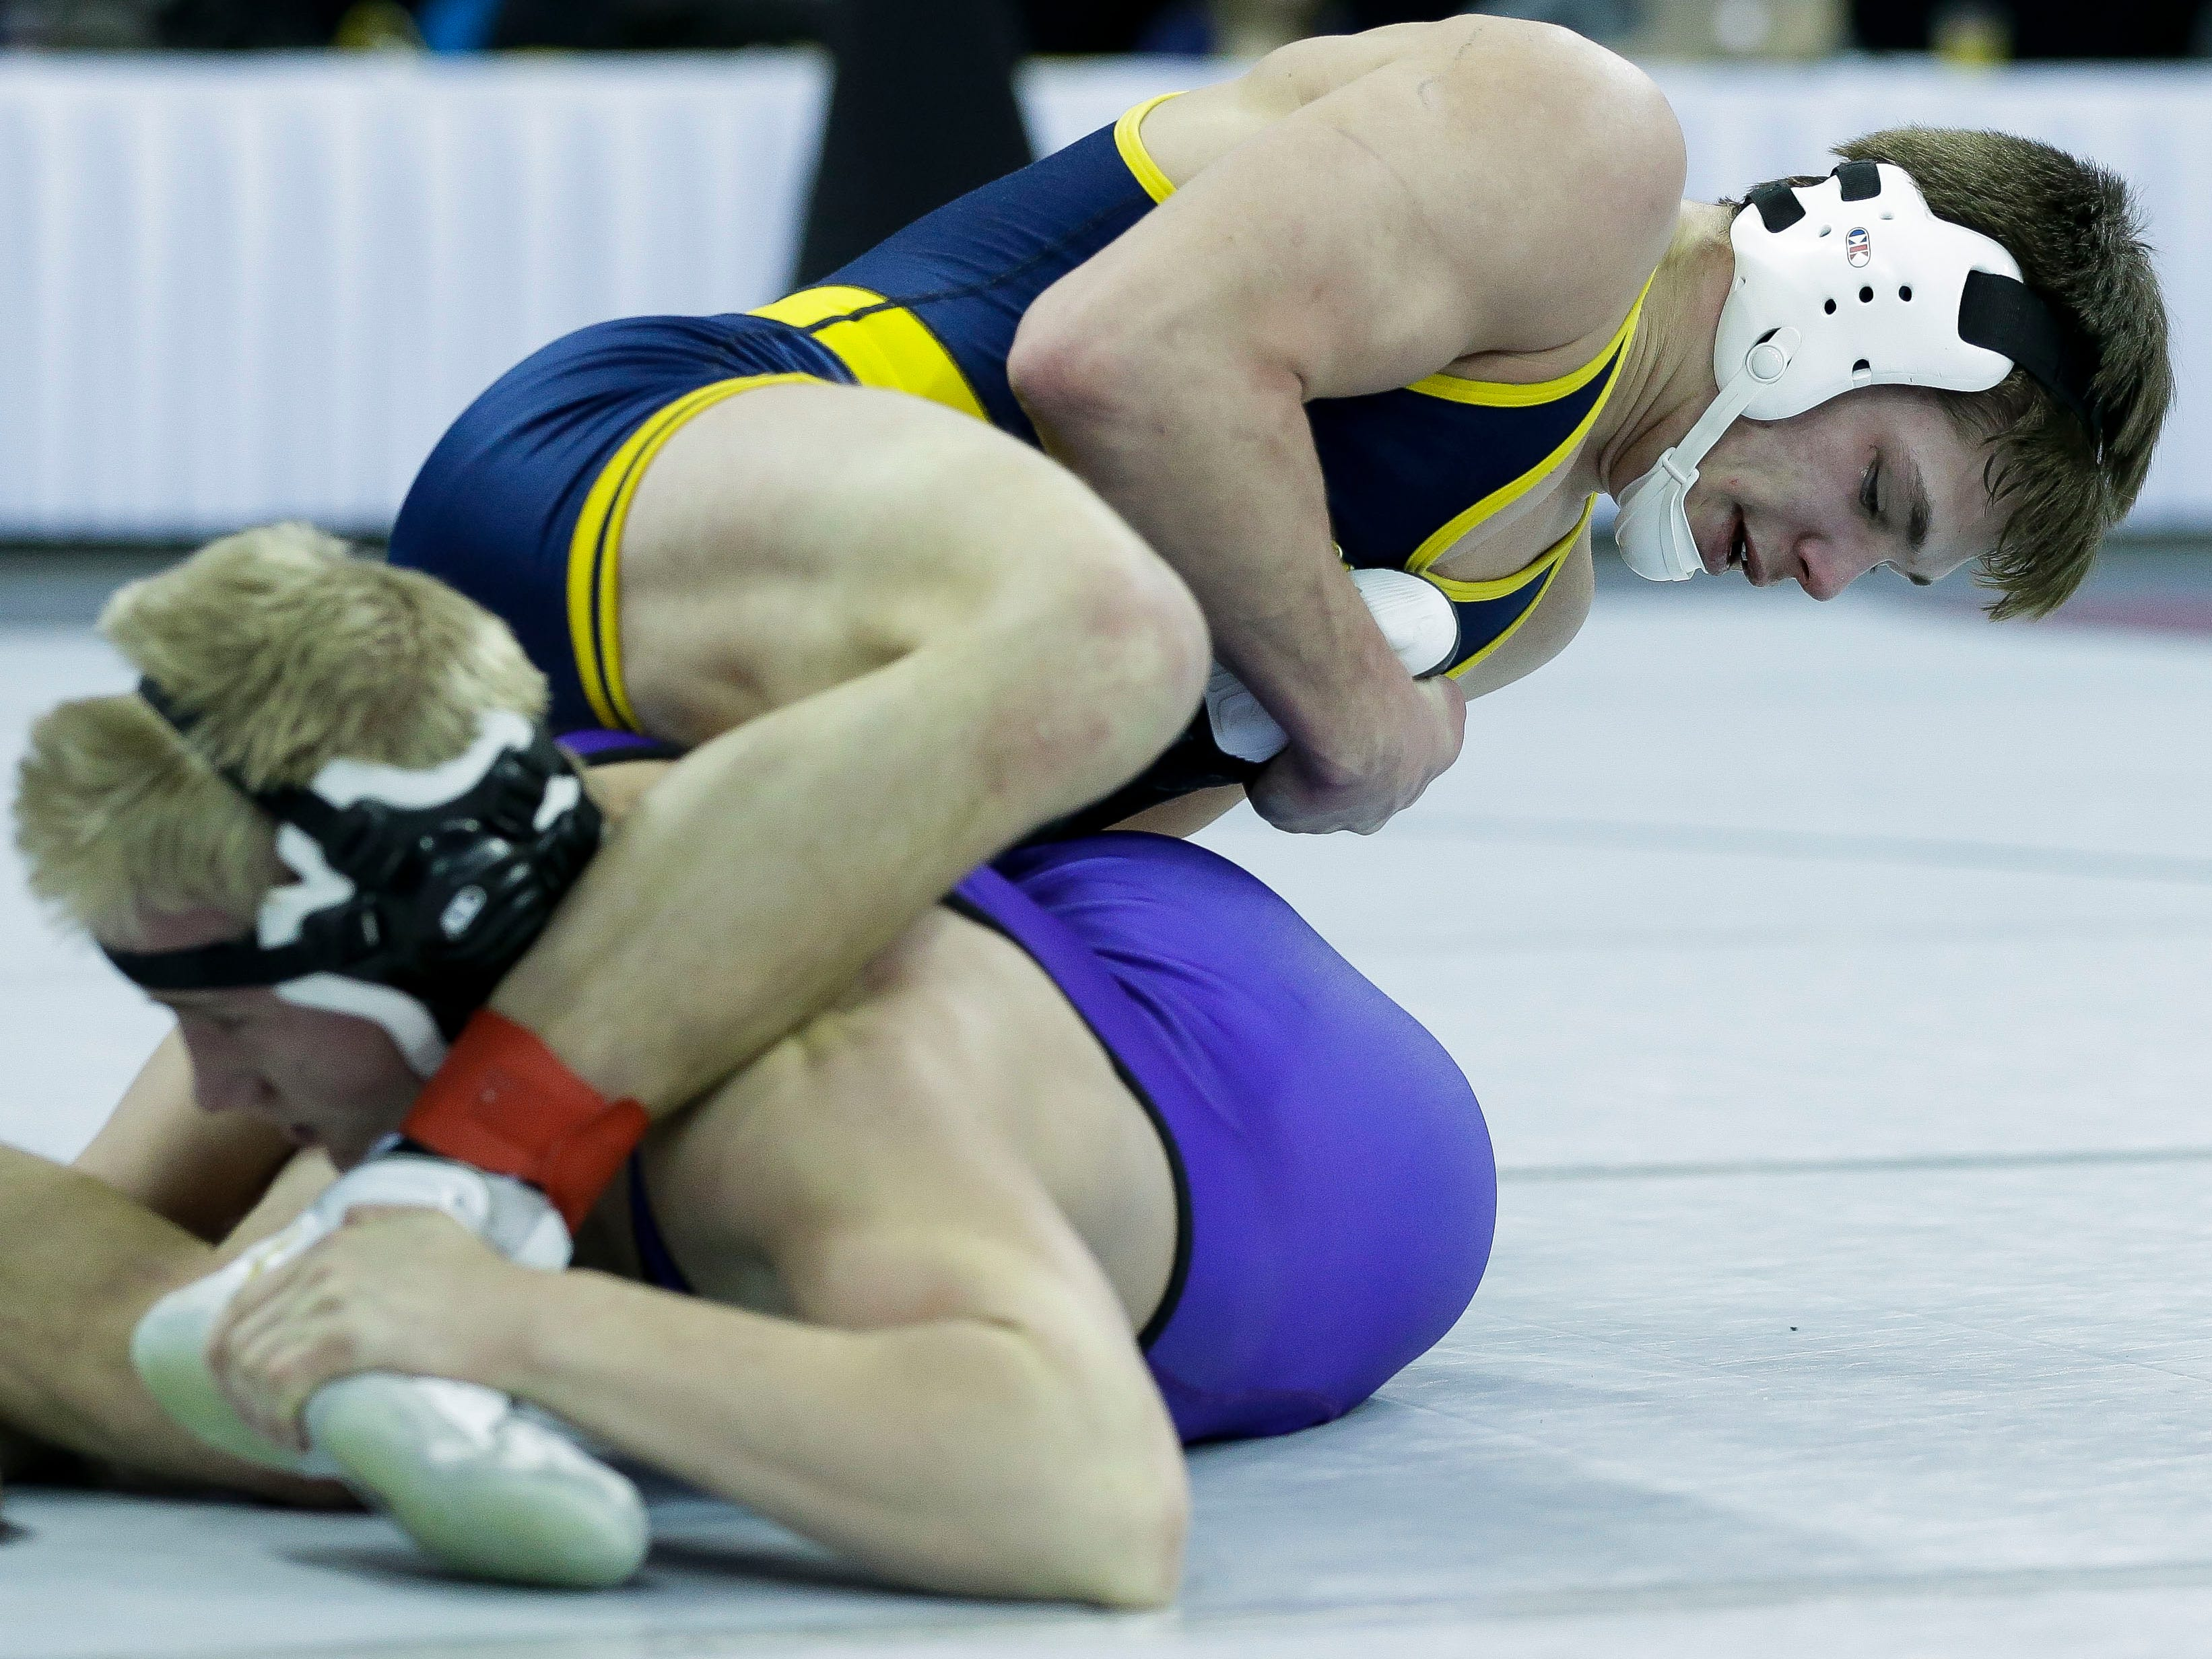 Chilton/Hilbert's Gaven Lisowe fights for position against Ellsworth's Sawyer Hamilton in a Division 2 152-pound preliminary match during the WIAA state wrestling tournament on Thursday, February 21, 2019, at the Kohl Center in Madison, Wis.